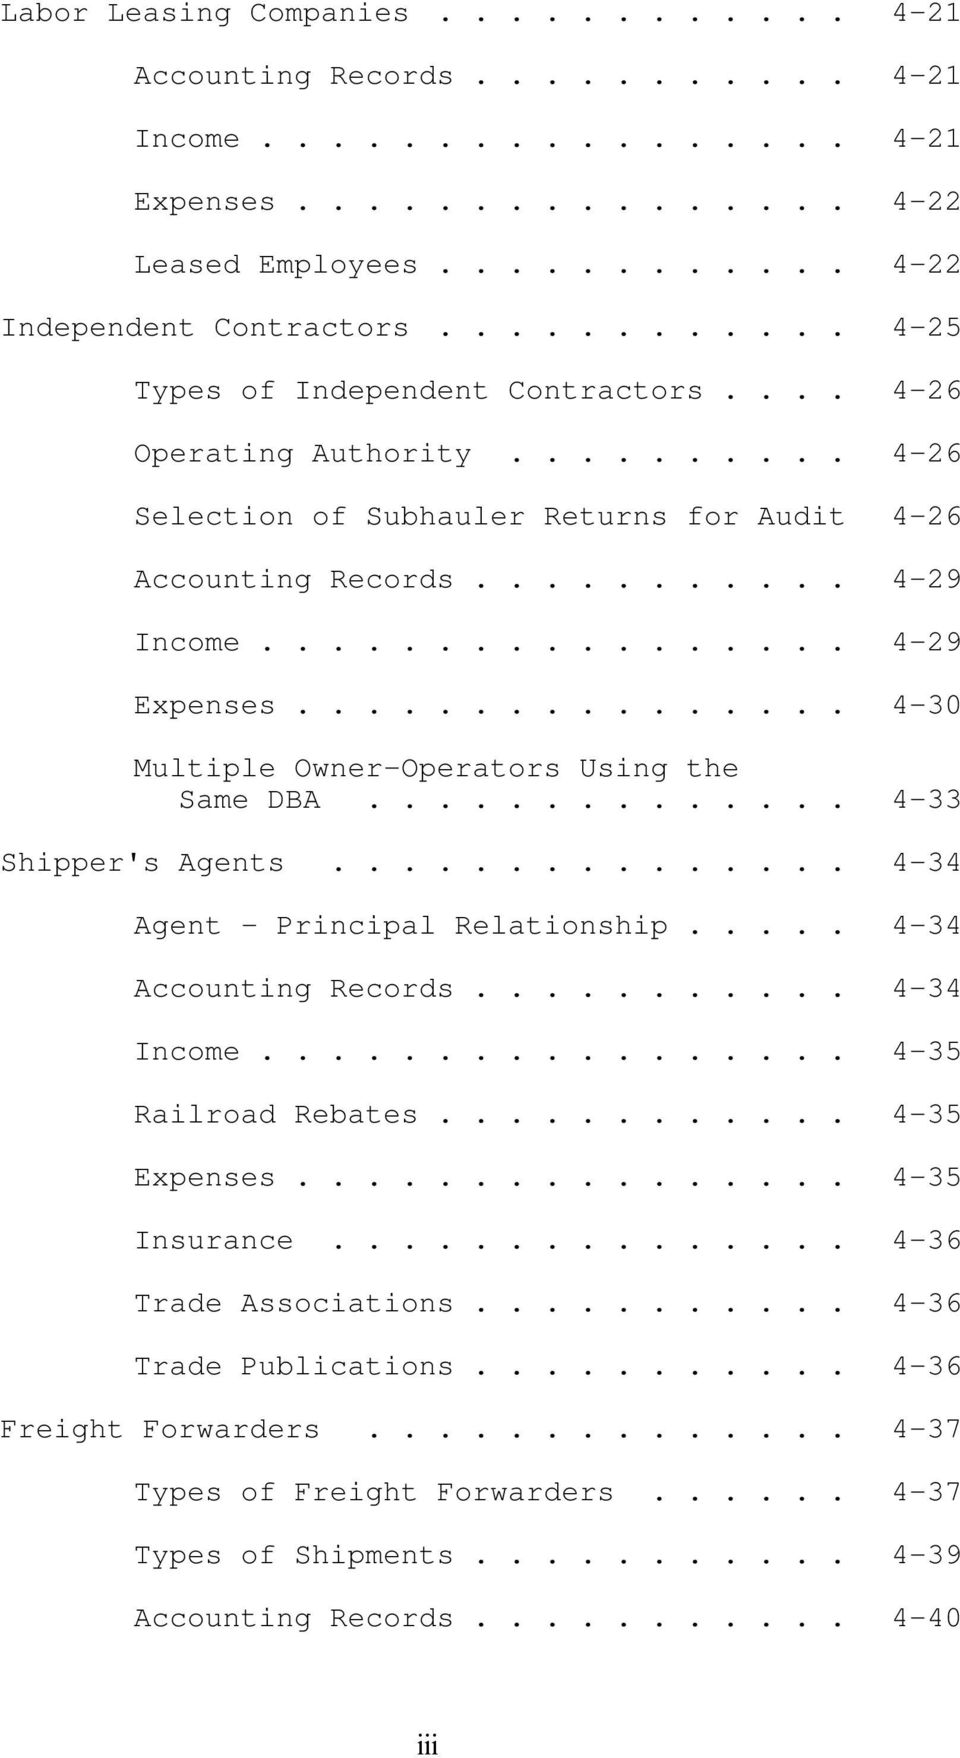 .. 4-30 Multiple Owner-Operators Using the Same DBA... 4-33 Shipper's Agents... 4-34 Agent - Principal Relationship... 4-34 Accounting Records... 4-34 Income.